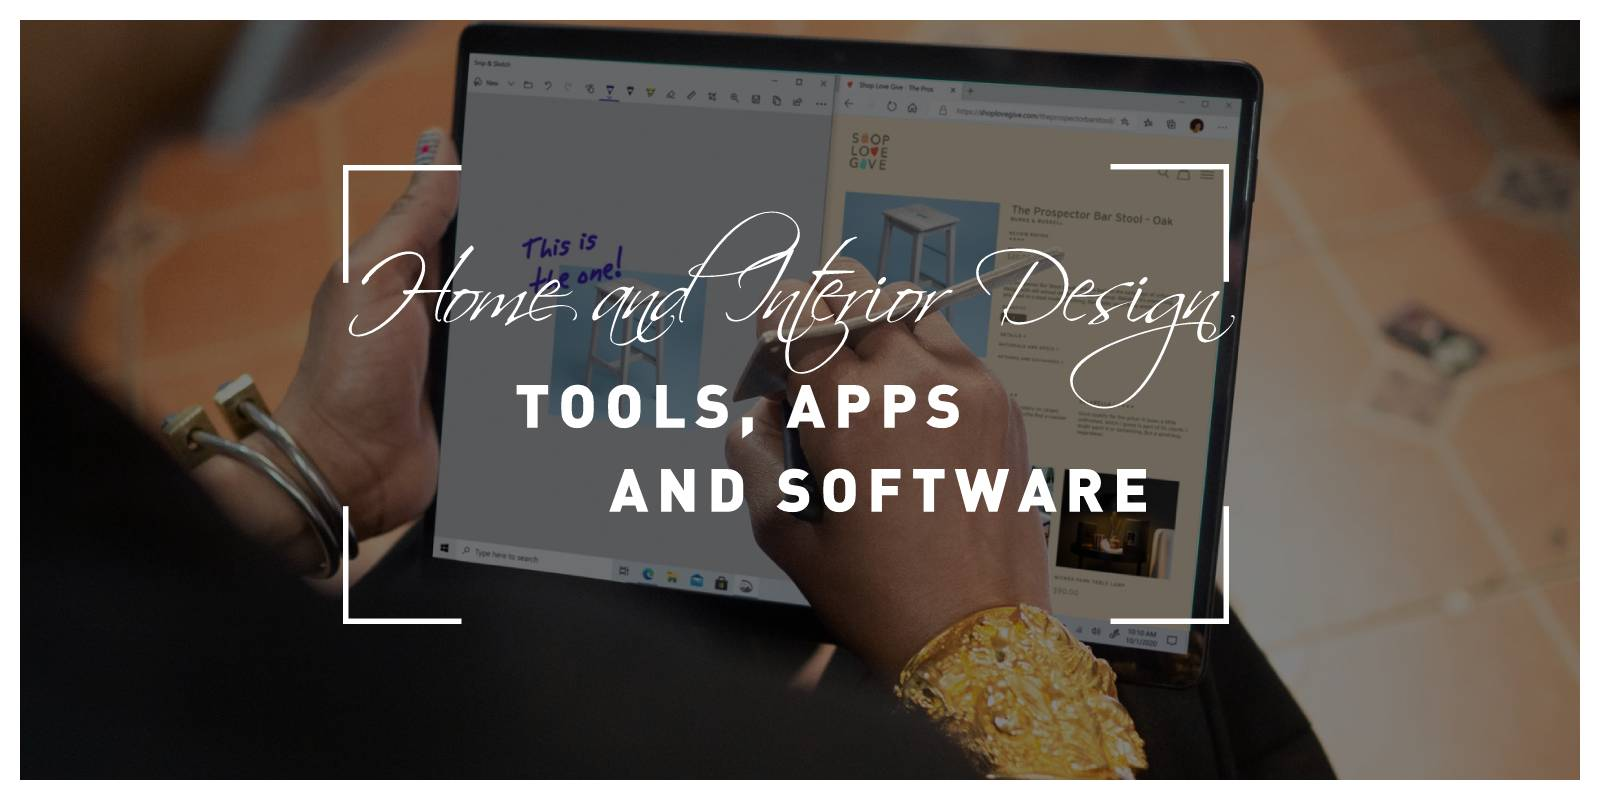 Best Free Home and Interior Design Tools, Apps and Software